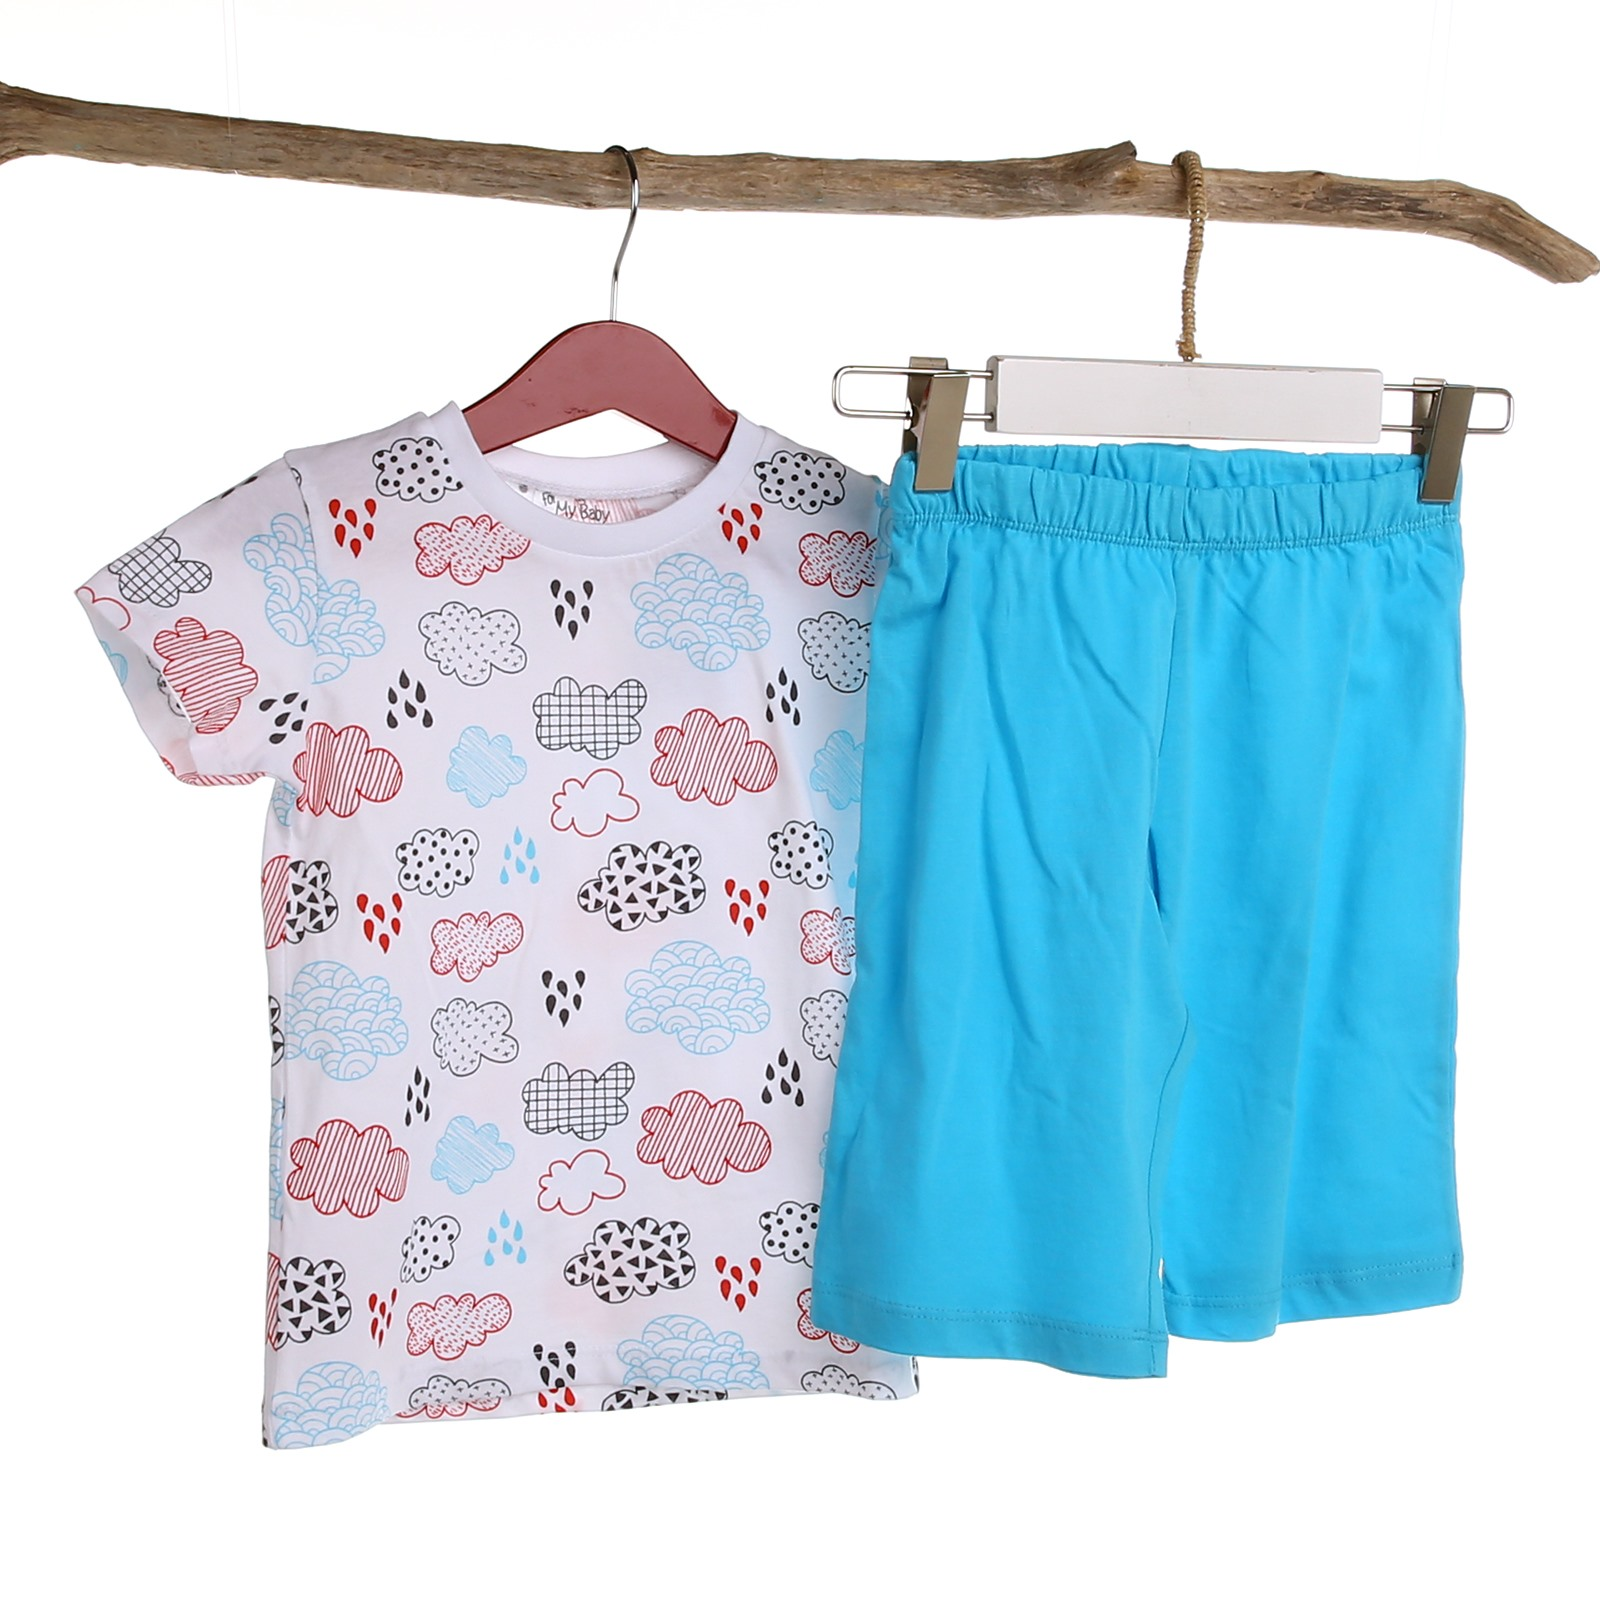 For My Baby Cloud Feature Printed Short Sleeve Pyjamas